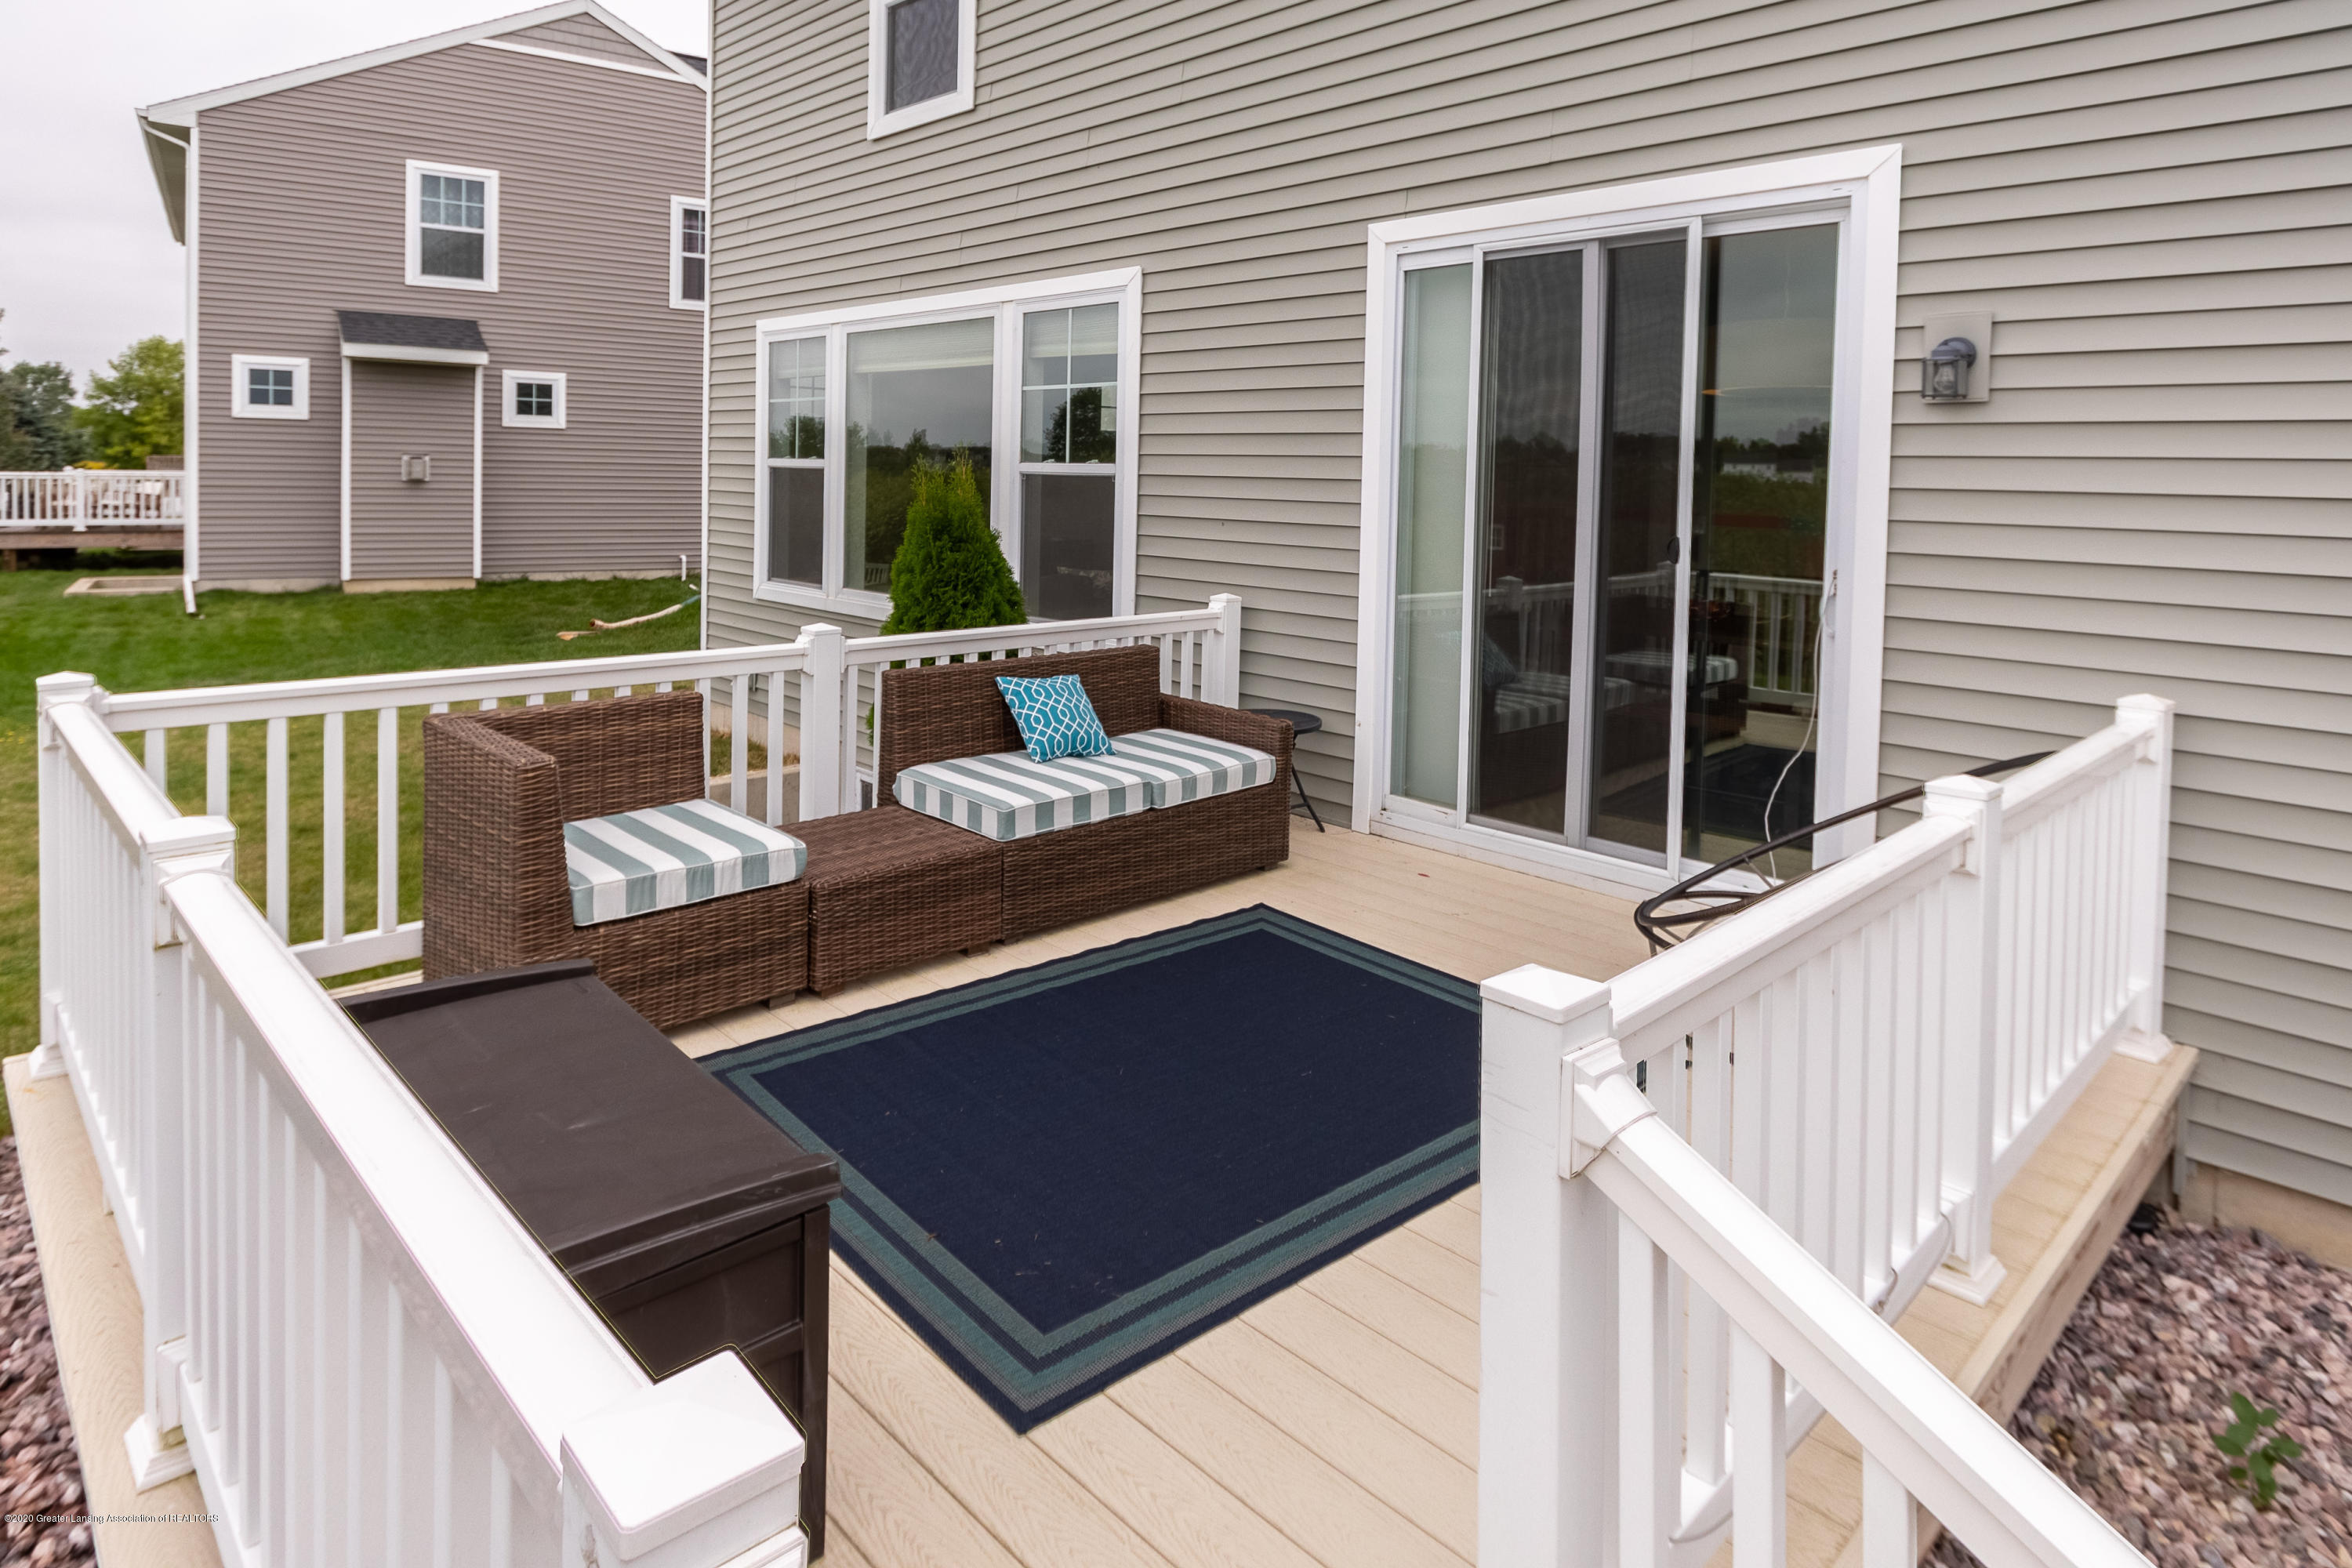 3758 Shearwater Ln - Composite Deck - 45